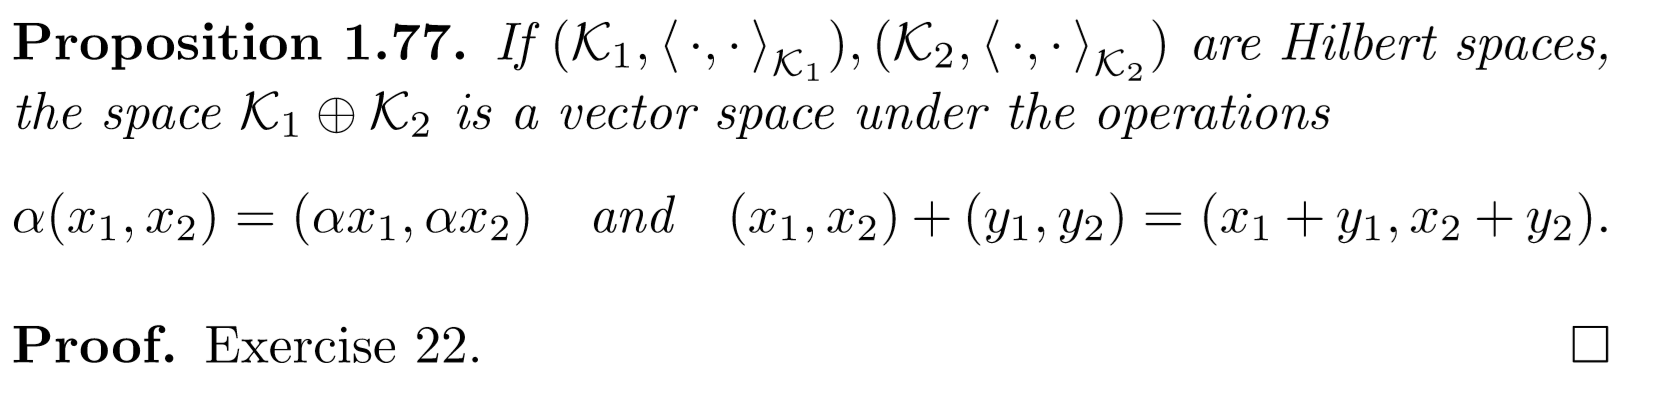 Proposition 1.77. If (K1, (:, :),,), (K2, (:, :)) are Hilbert spaces, the space Ki @ K2 is a vector space under the operation